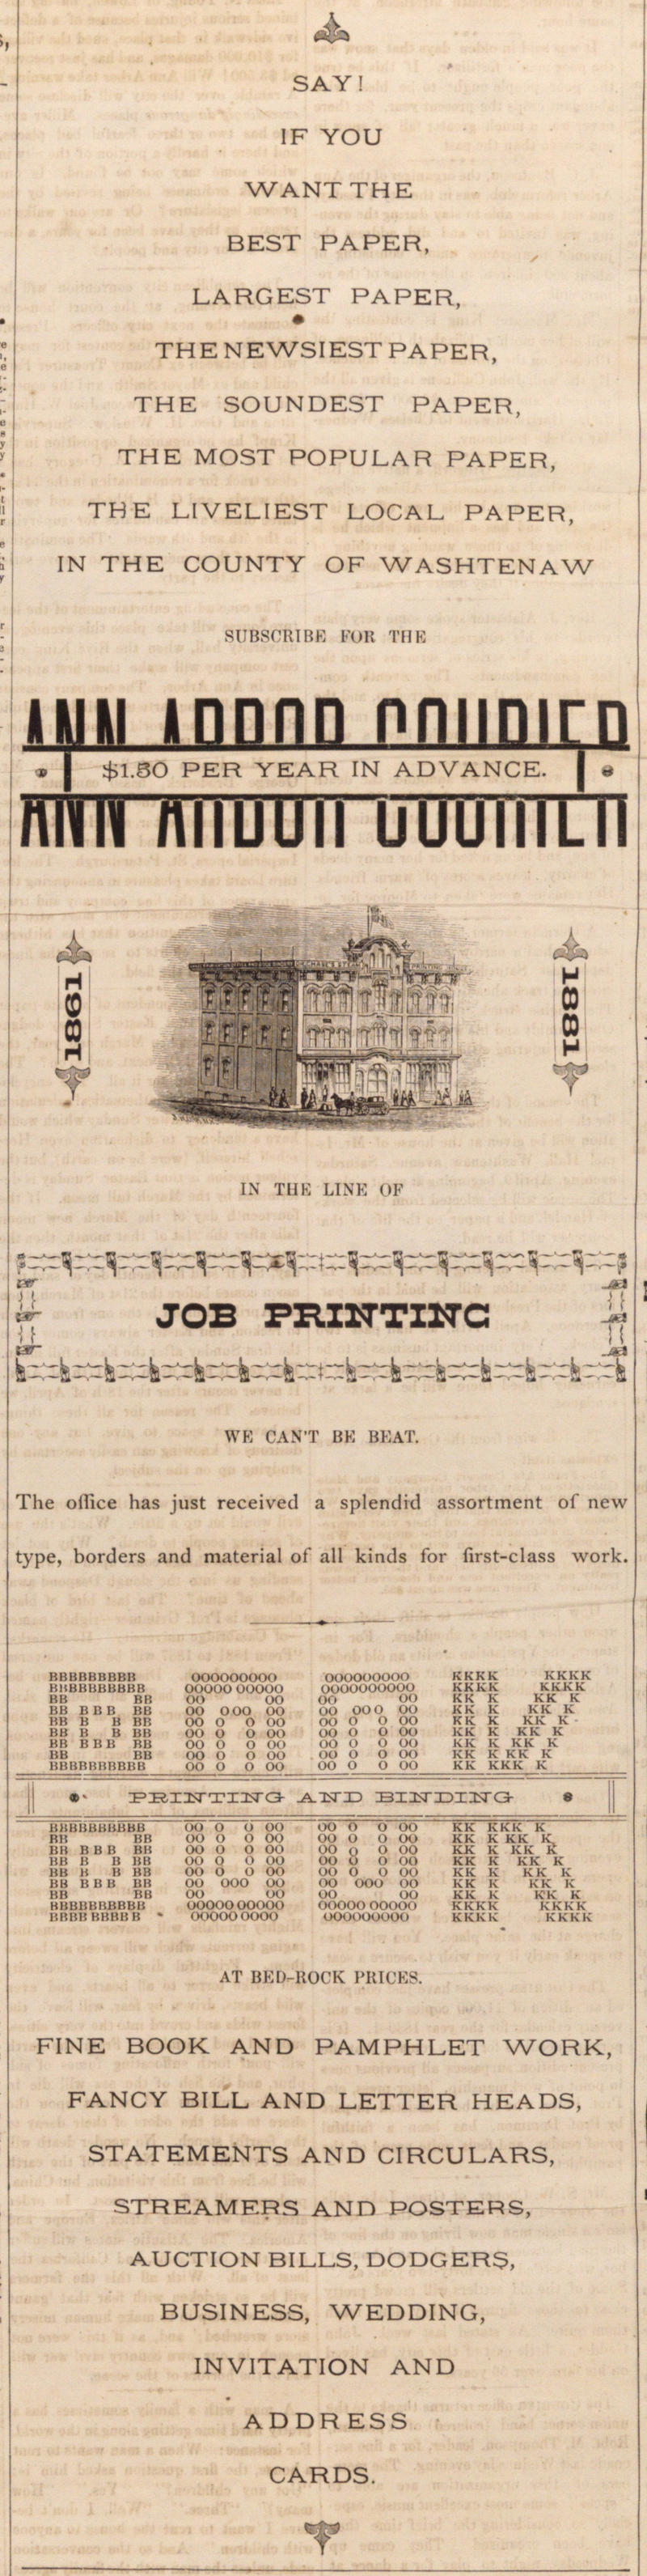 Printing And Binding image